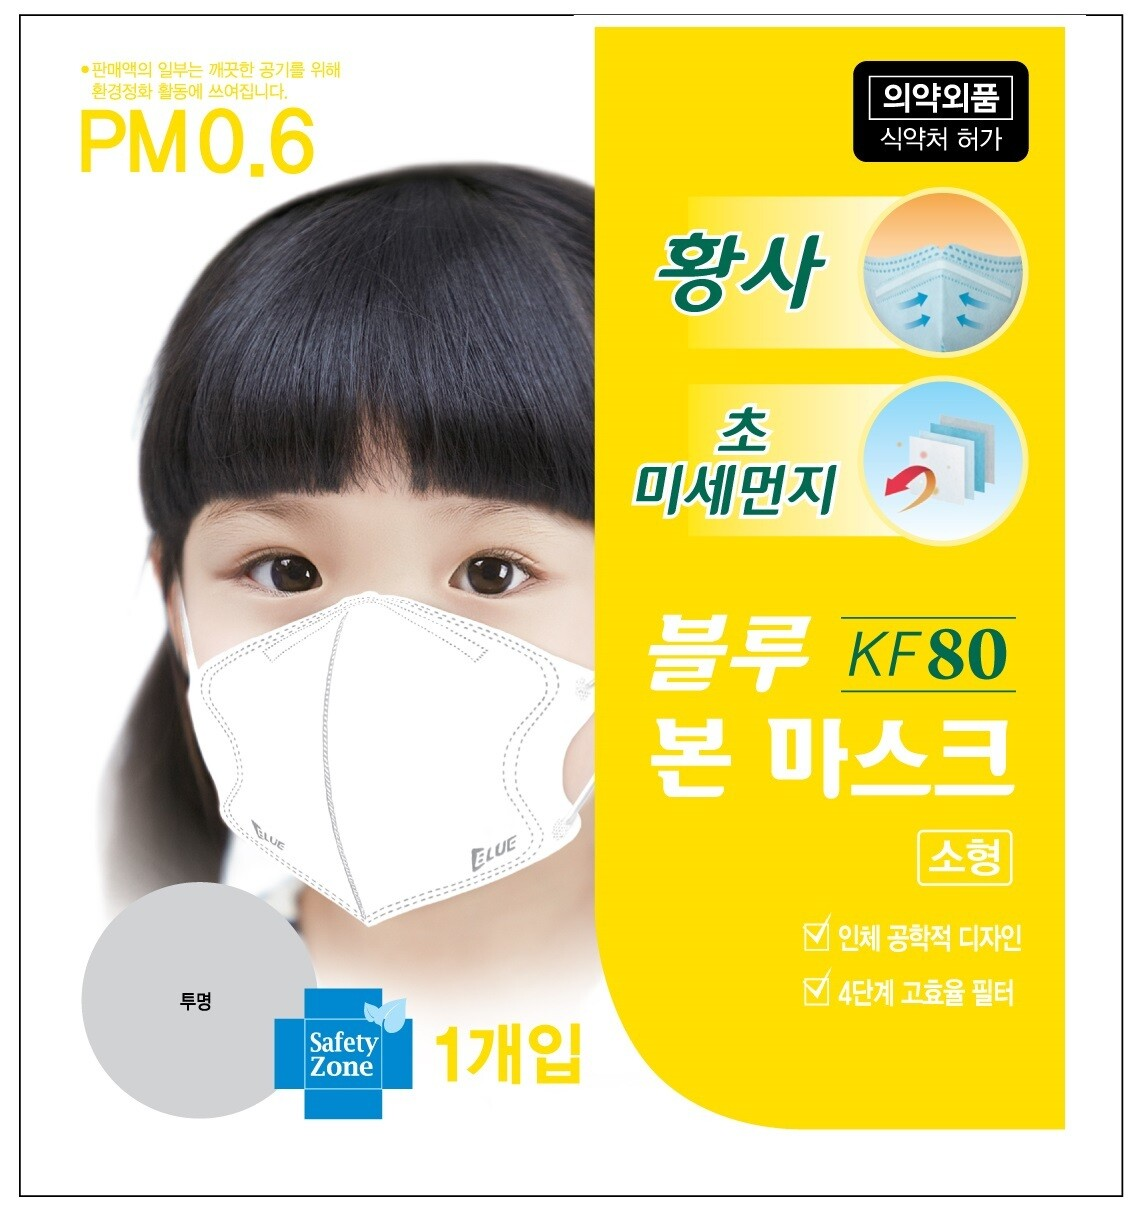 BLUE Industry KF80 Mask (Small) / No.1 Korean Children Mask Blue KF80 (ONLY@BE HEALTHY) (Official Distributor)